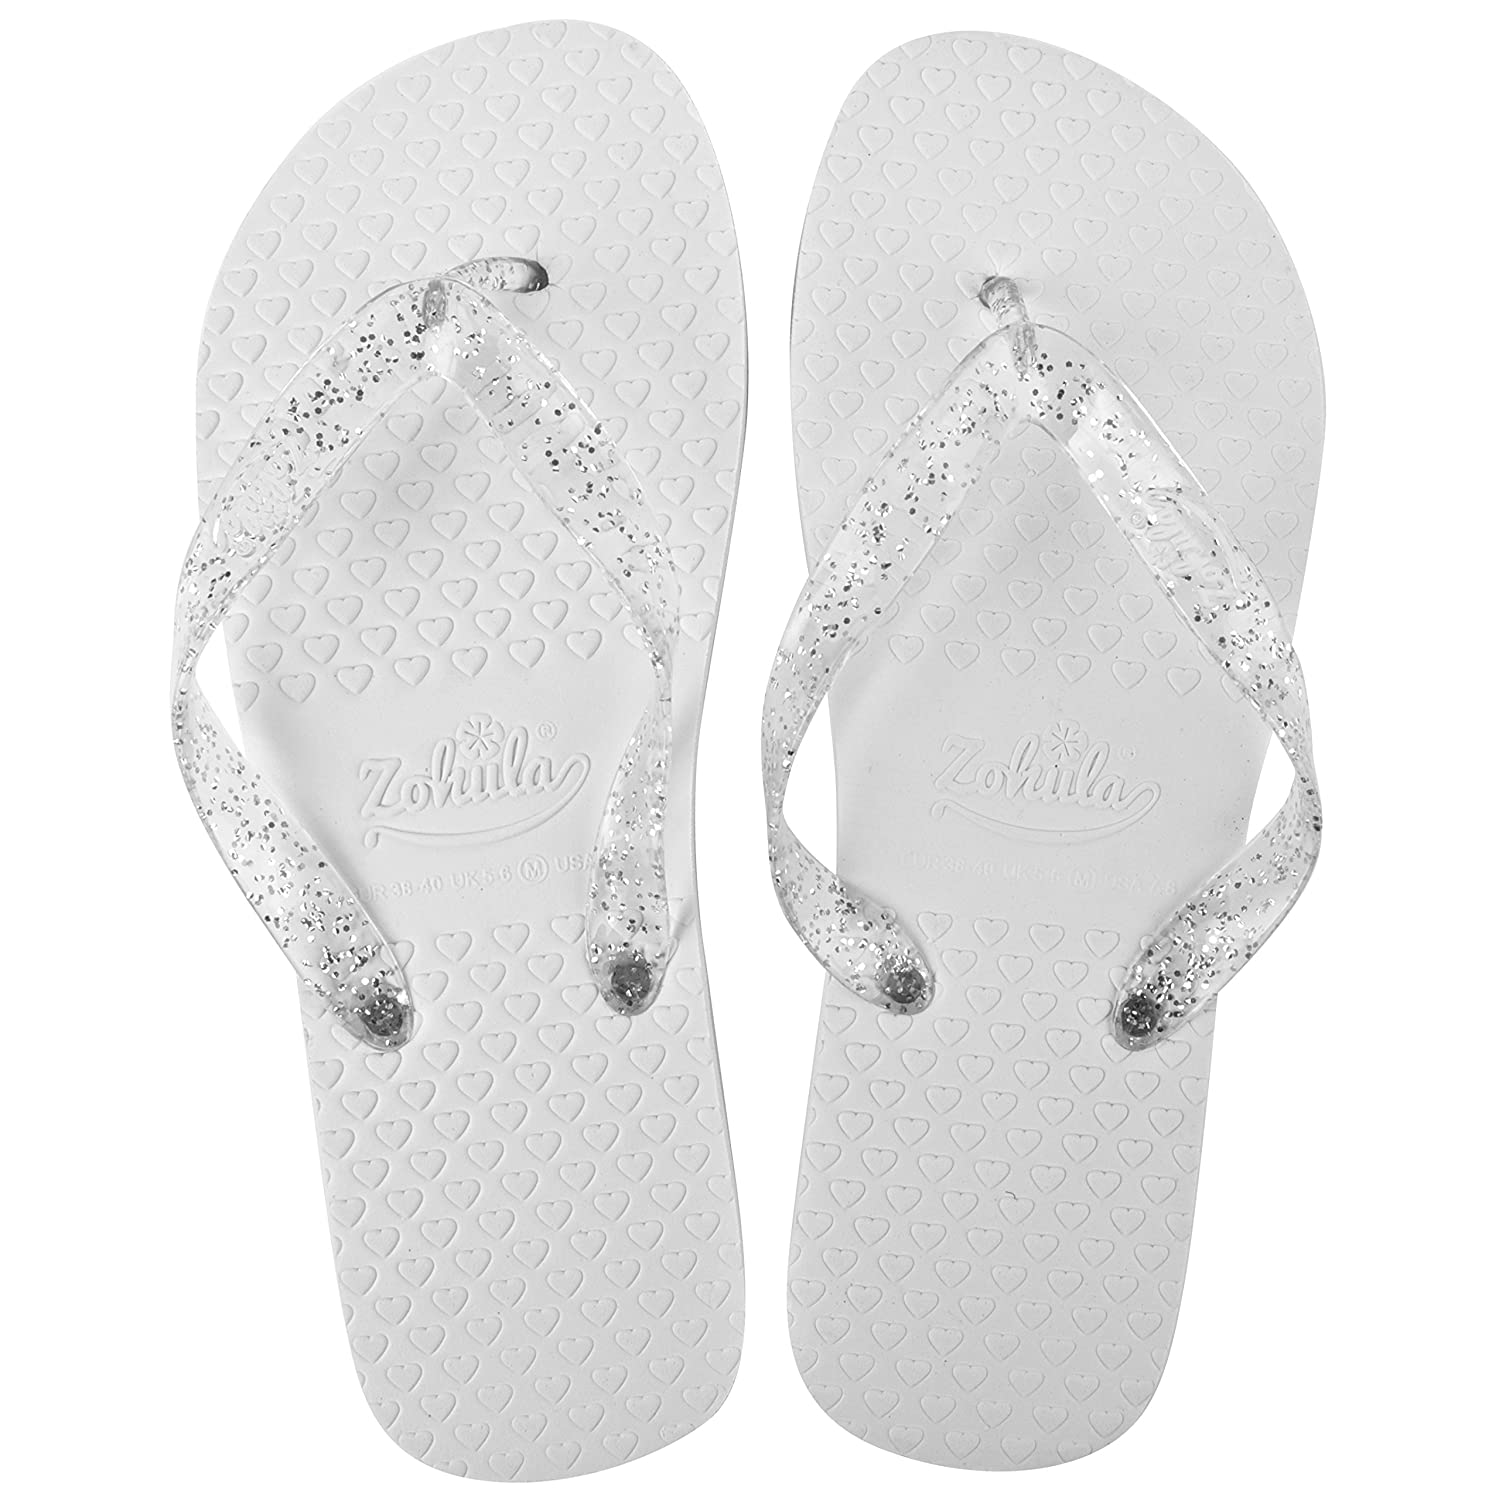 bd339a5b17e53e Zohula White Wedding Premier Party Pack - 20 Pairs Flip Flops Mixed Sizes -  Sx3 Mx12 Lx5 Including Basket  Amazon.co.uk  Shoes   Bags